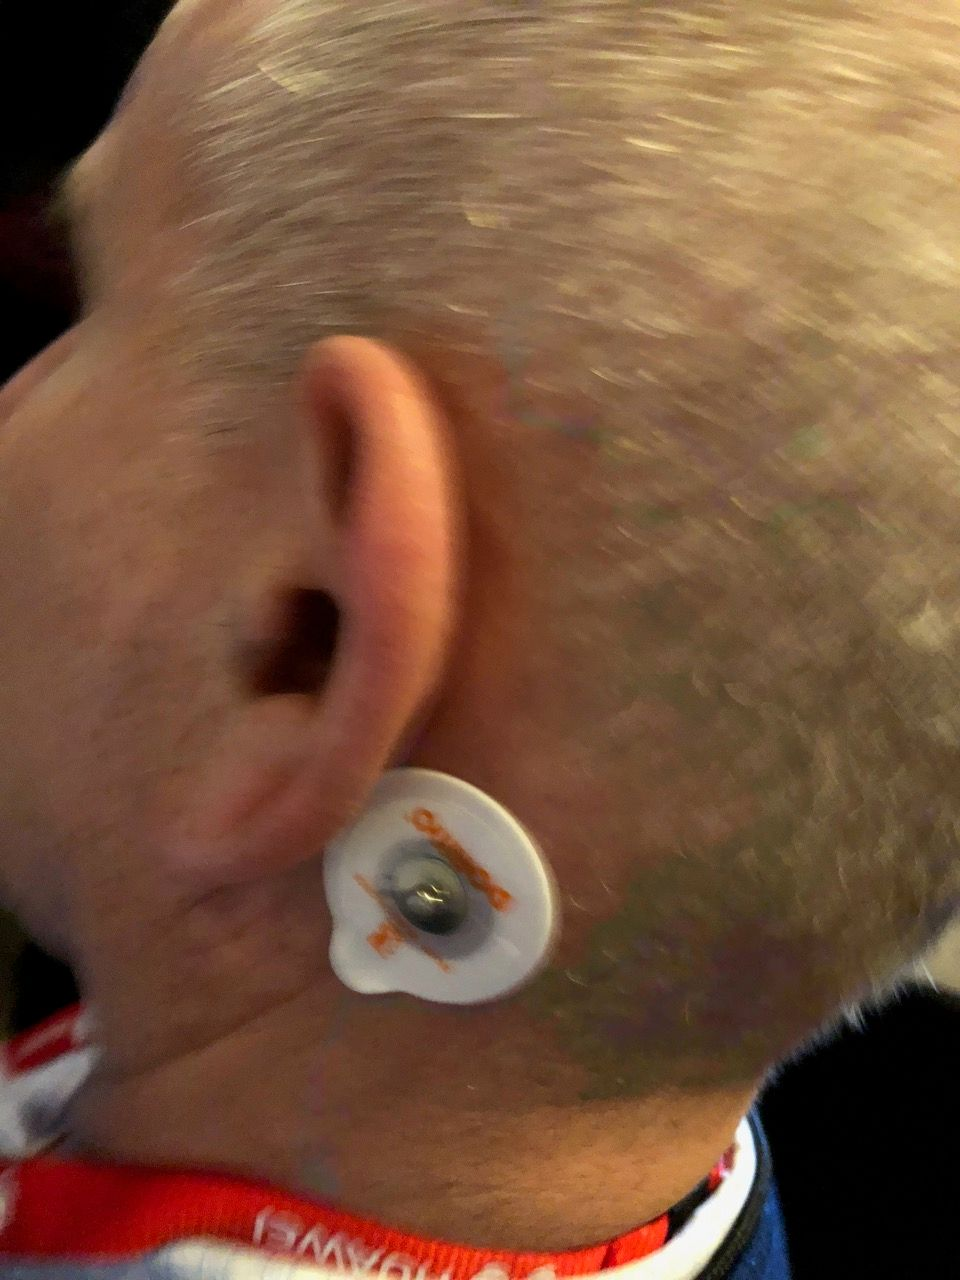 To wear the Modius headset, you need to stick electrodes